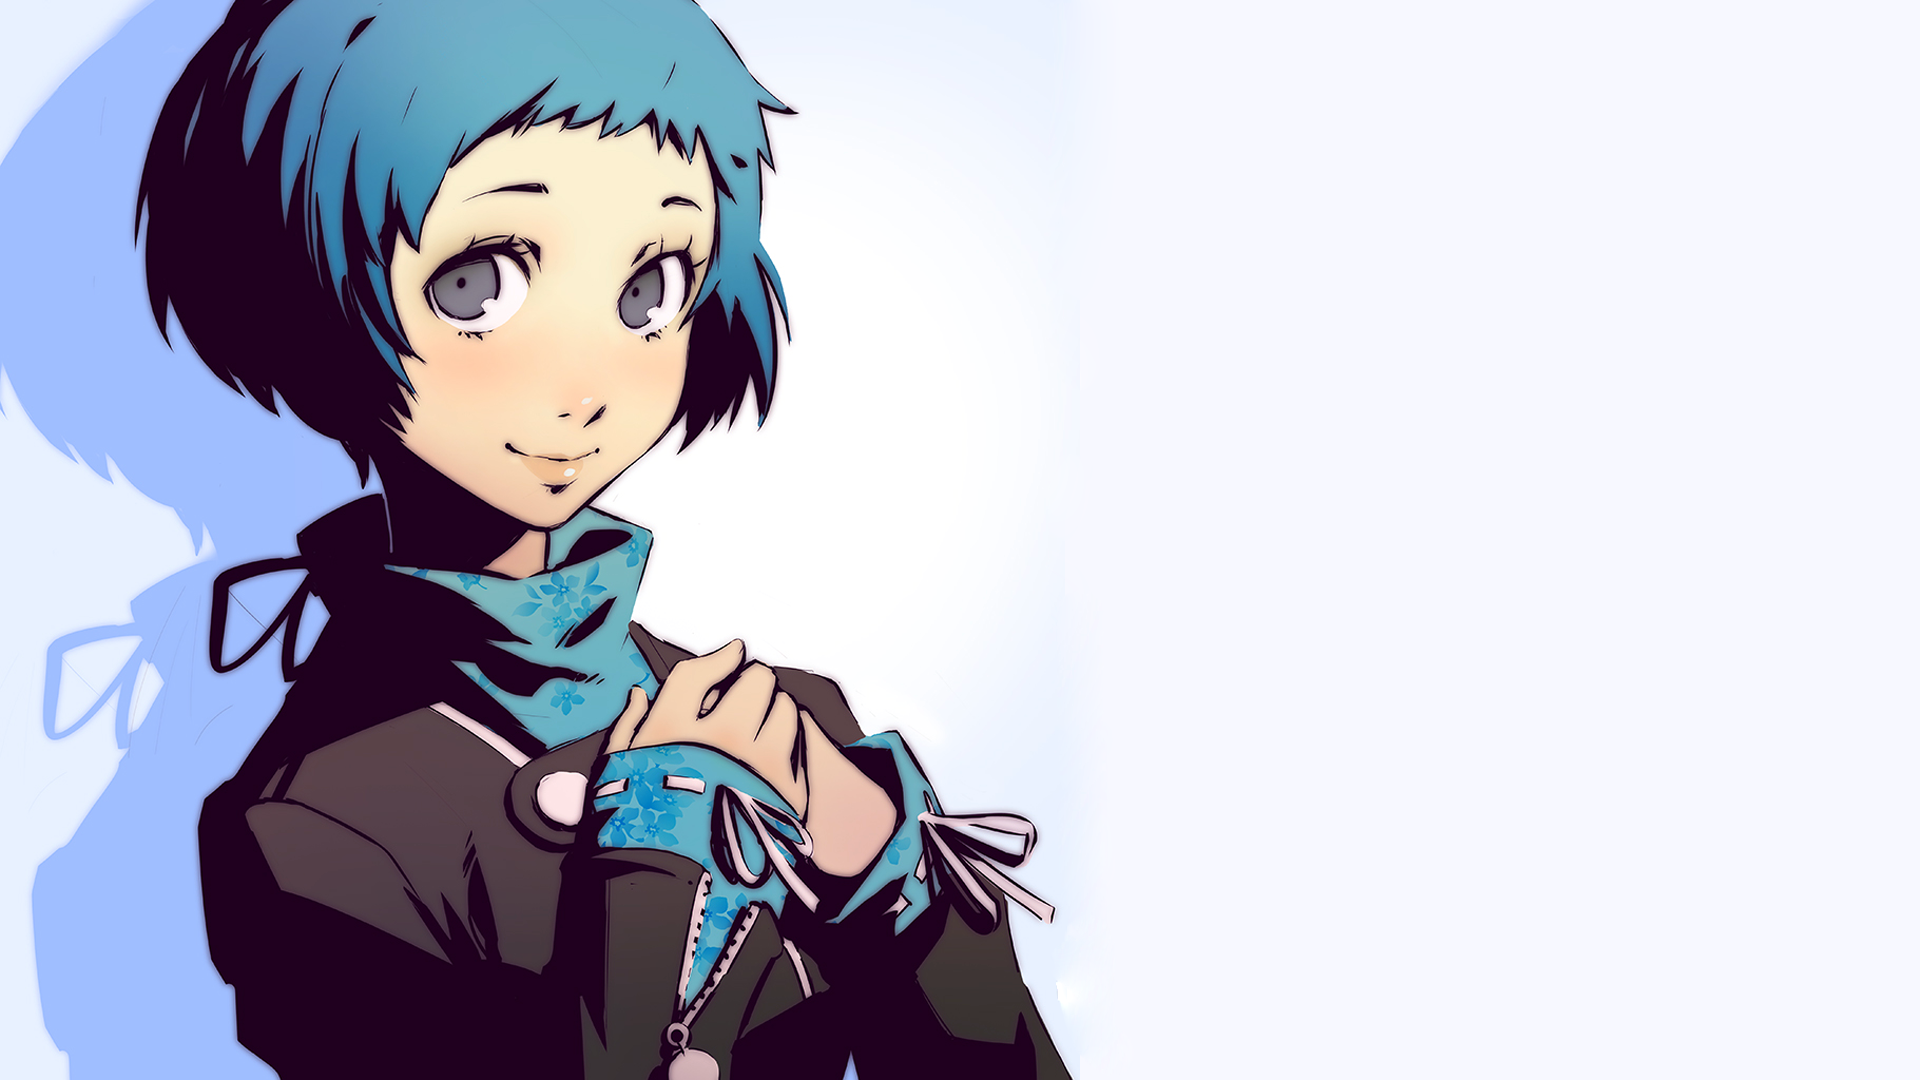 Persona3 Wallpaper 4k Thanatos: Persona 3 Full HD Wallpaper And Background Image